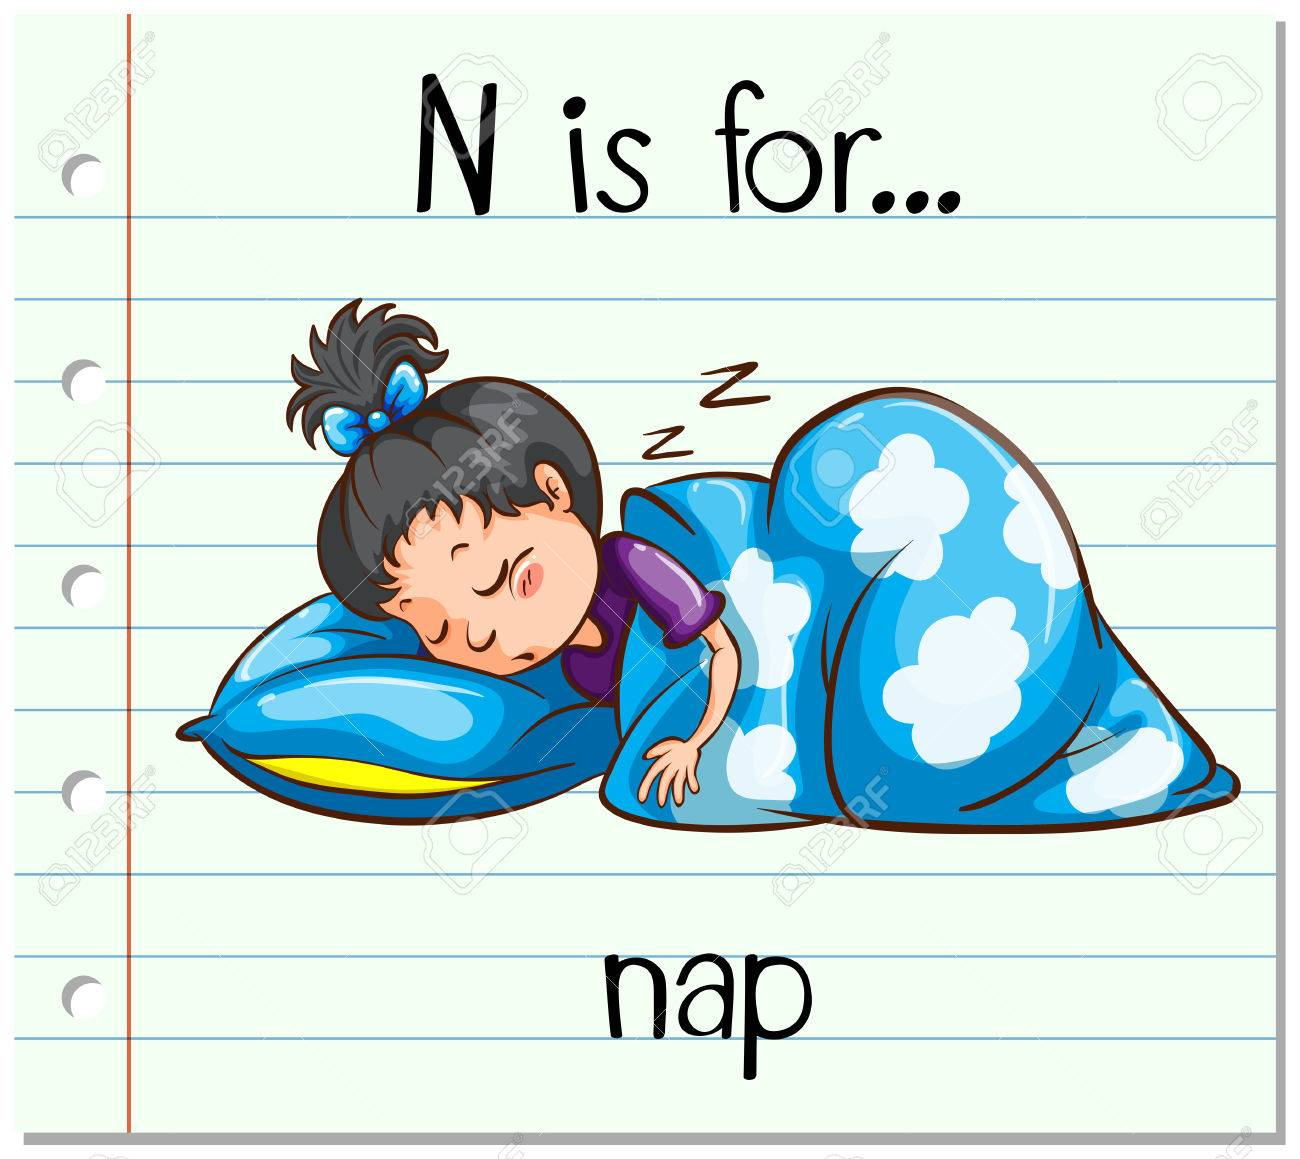 hight resolution of flashcard letter n is for nap illustration stock vector 54478626